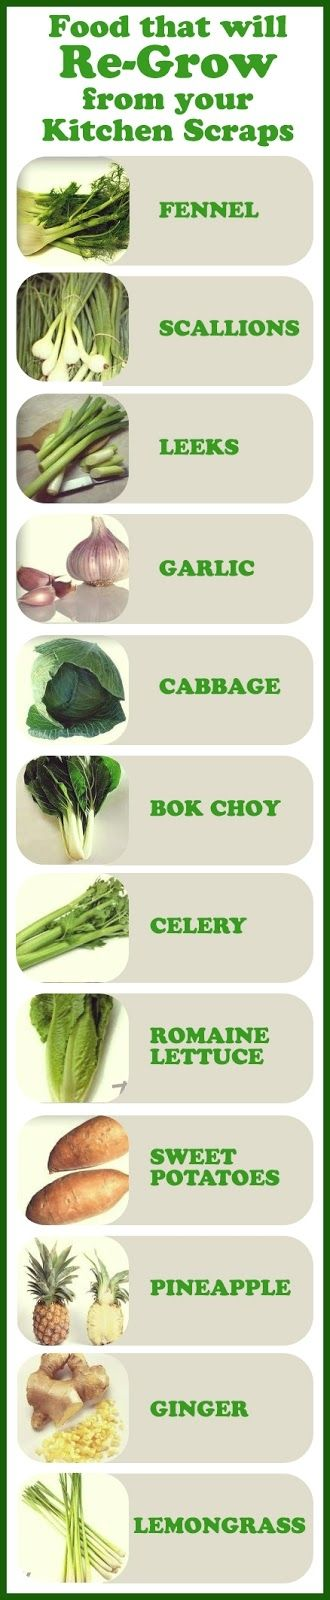 Foods that will Re-Grow from your Kitchen Scraps